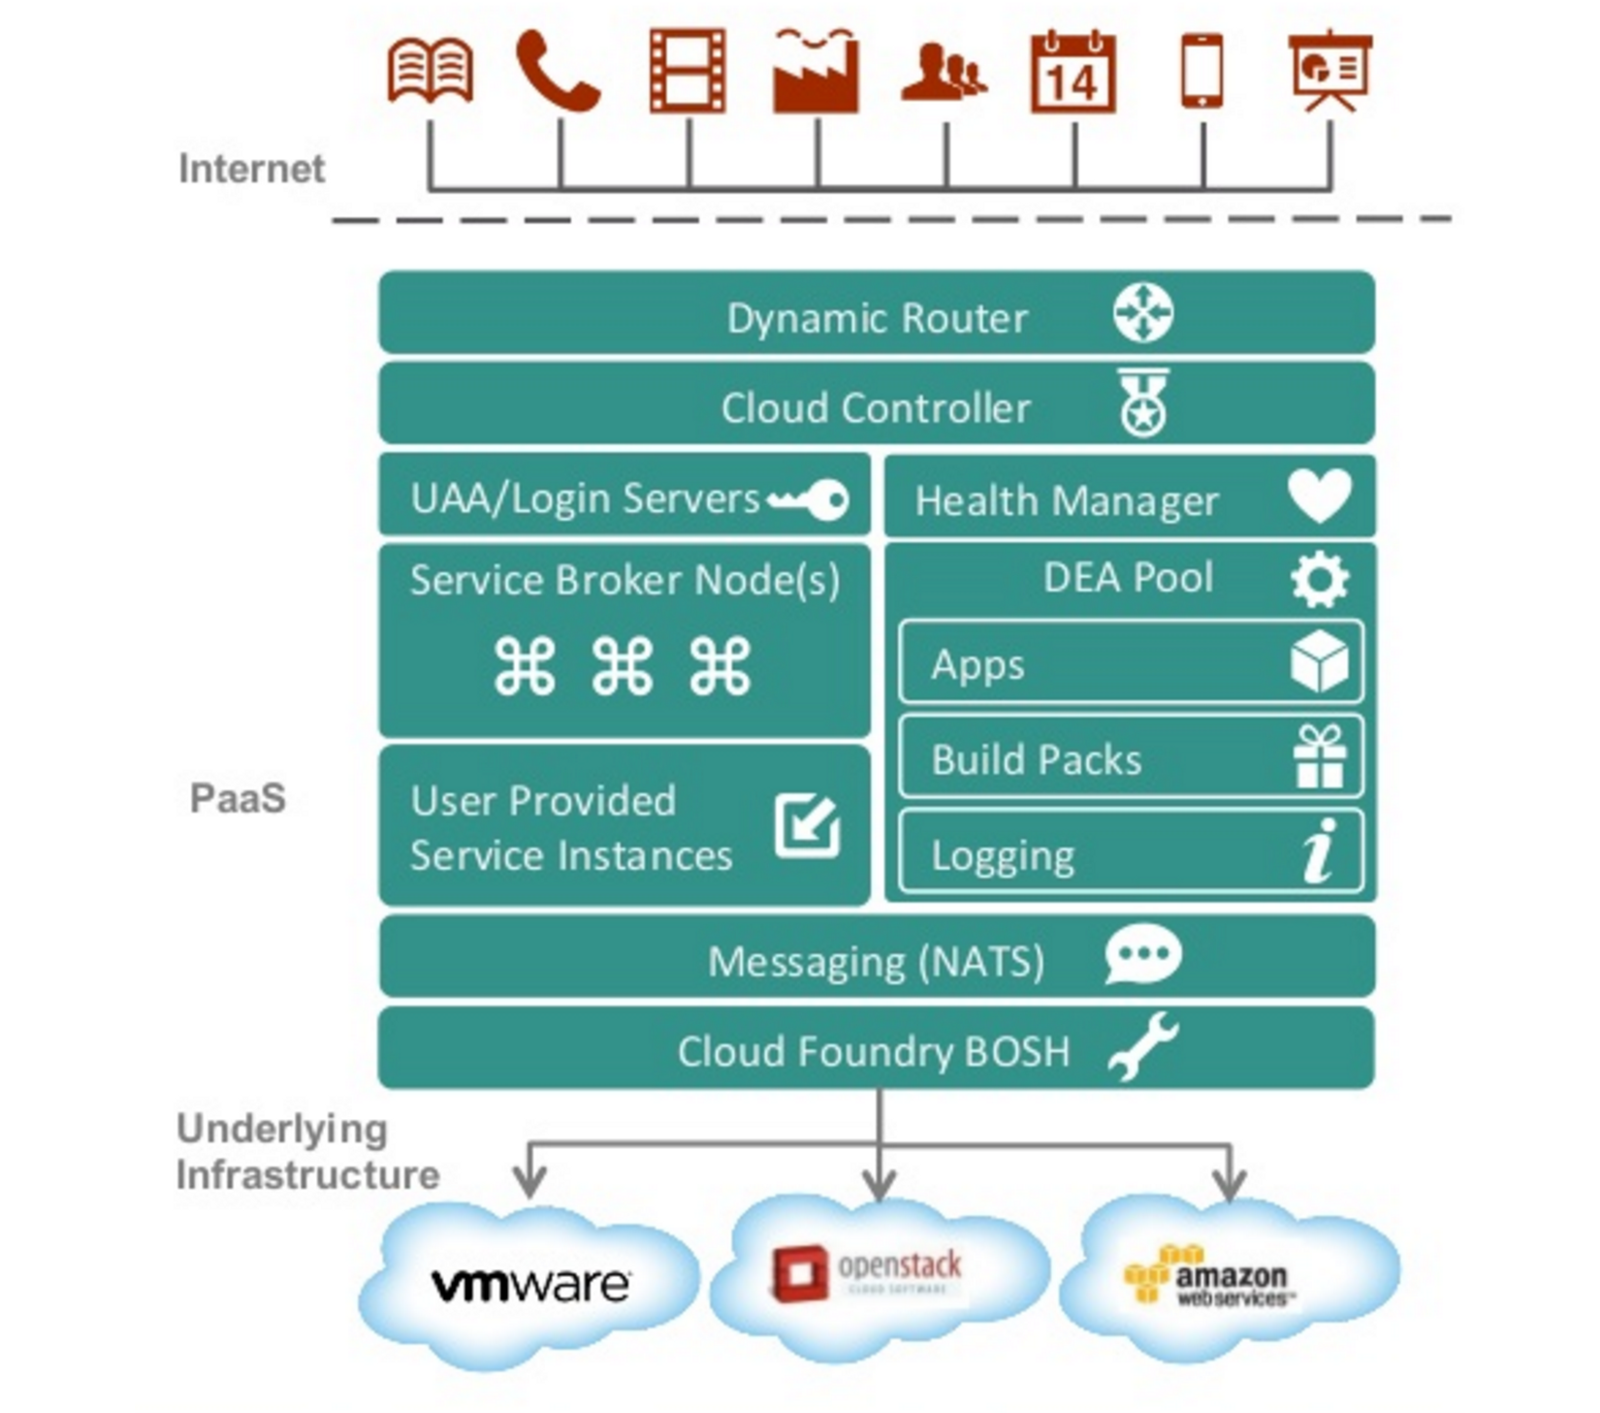 How To Deploy Wso2 Middleware On Cloud Foundry Imesh